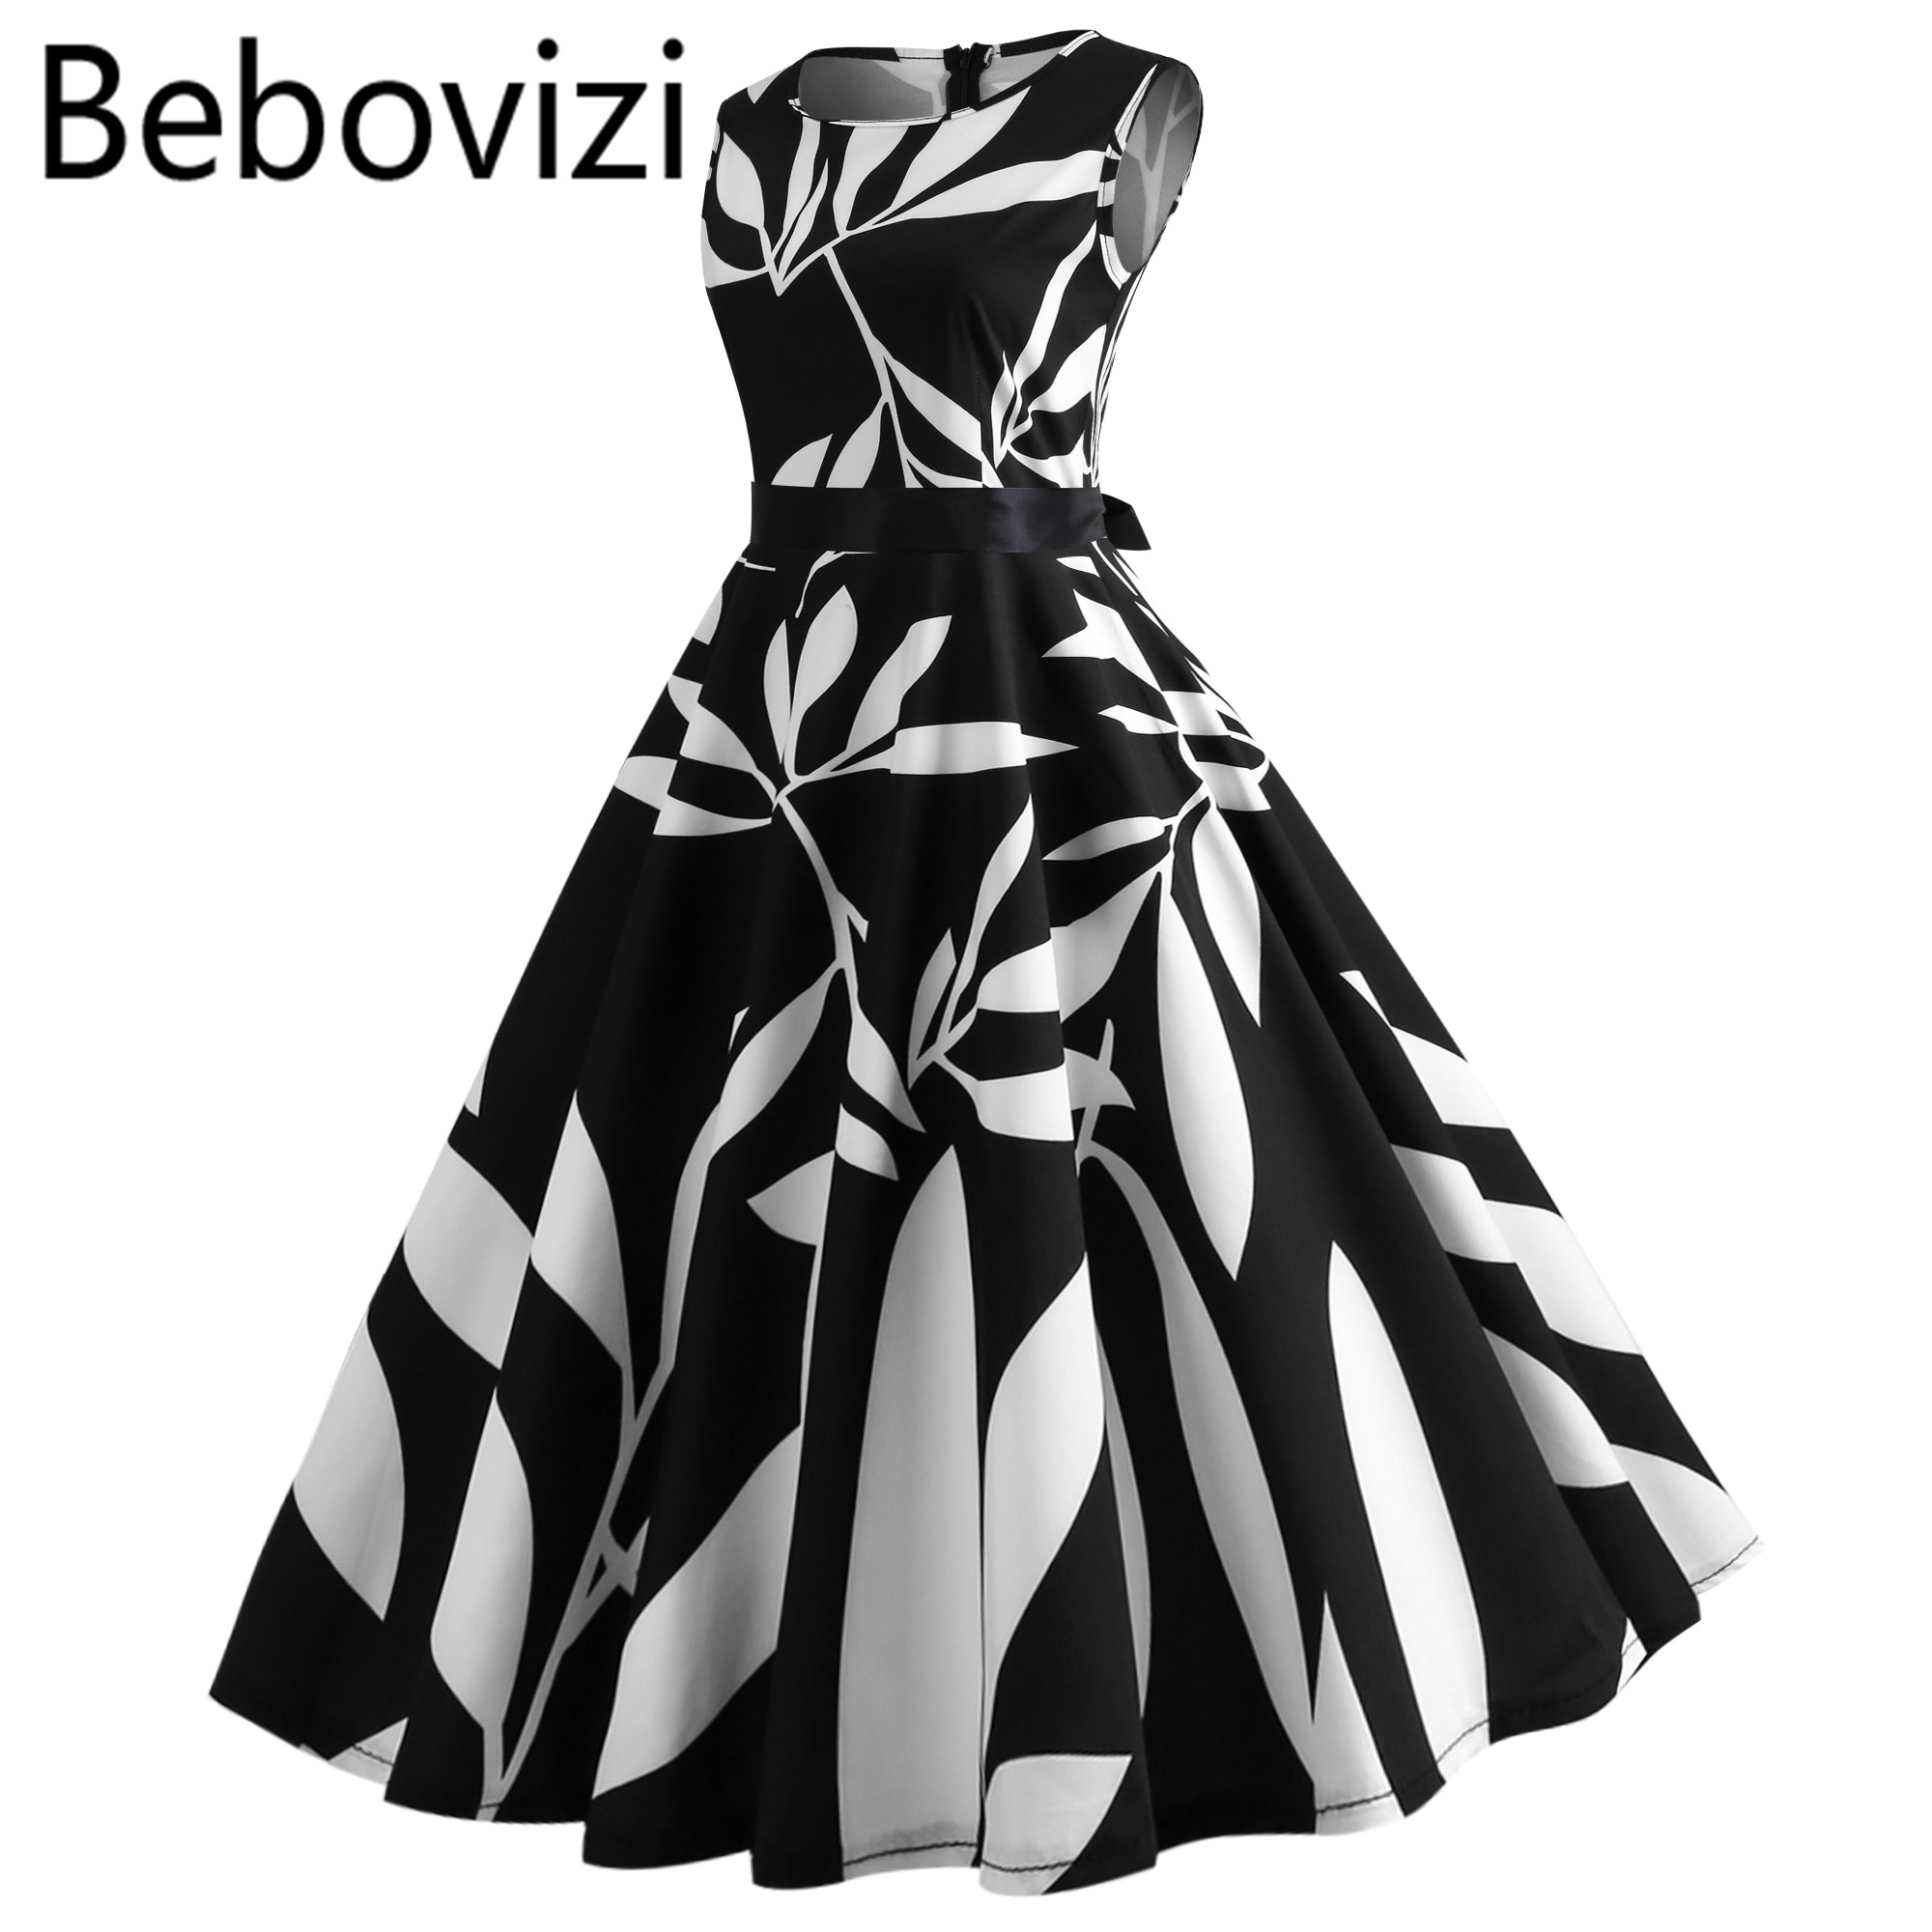 US $9.9 30% OFF|Fashion Black White Plus Size Vintage Dress Robe Femme  Casual Elegant Summer Clothes O neck Party Beach Midi Dresses for Women-in  ...